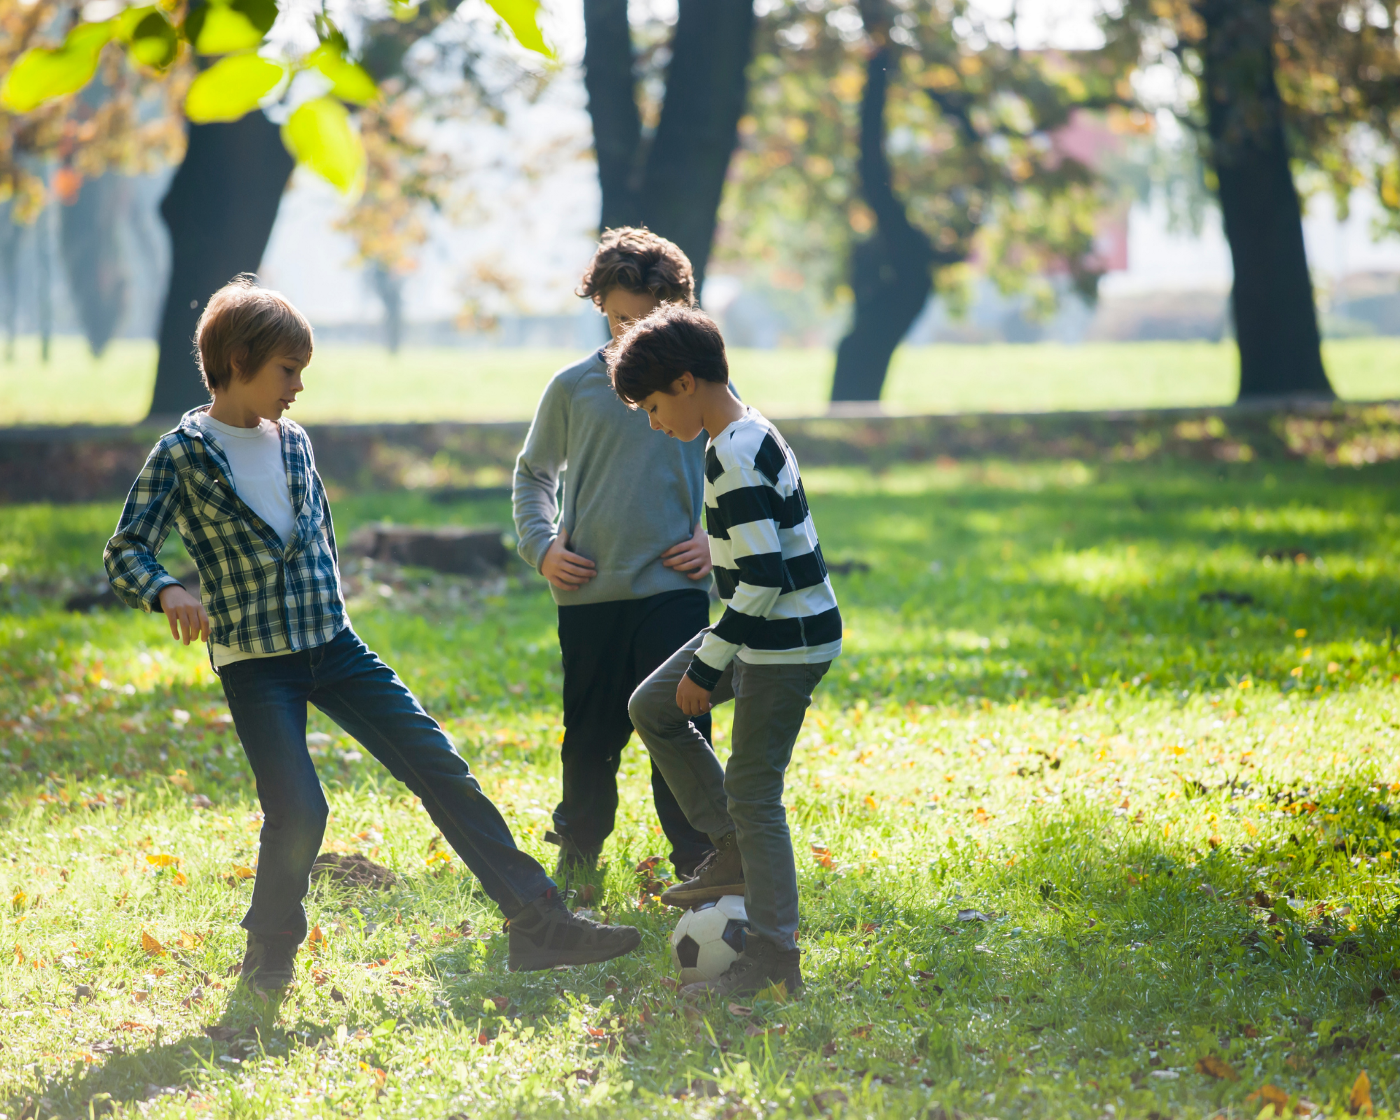 Three boys playing with a football outdoors.